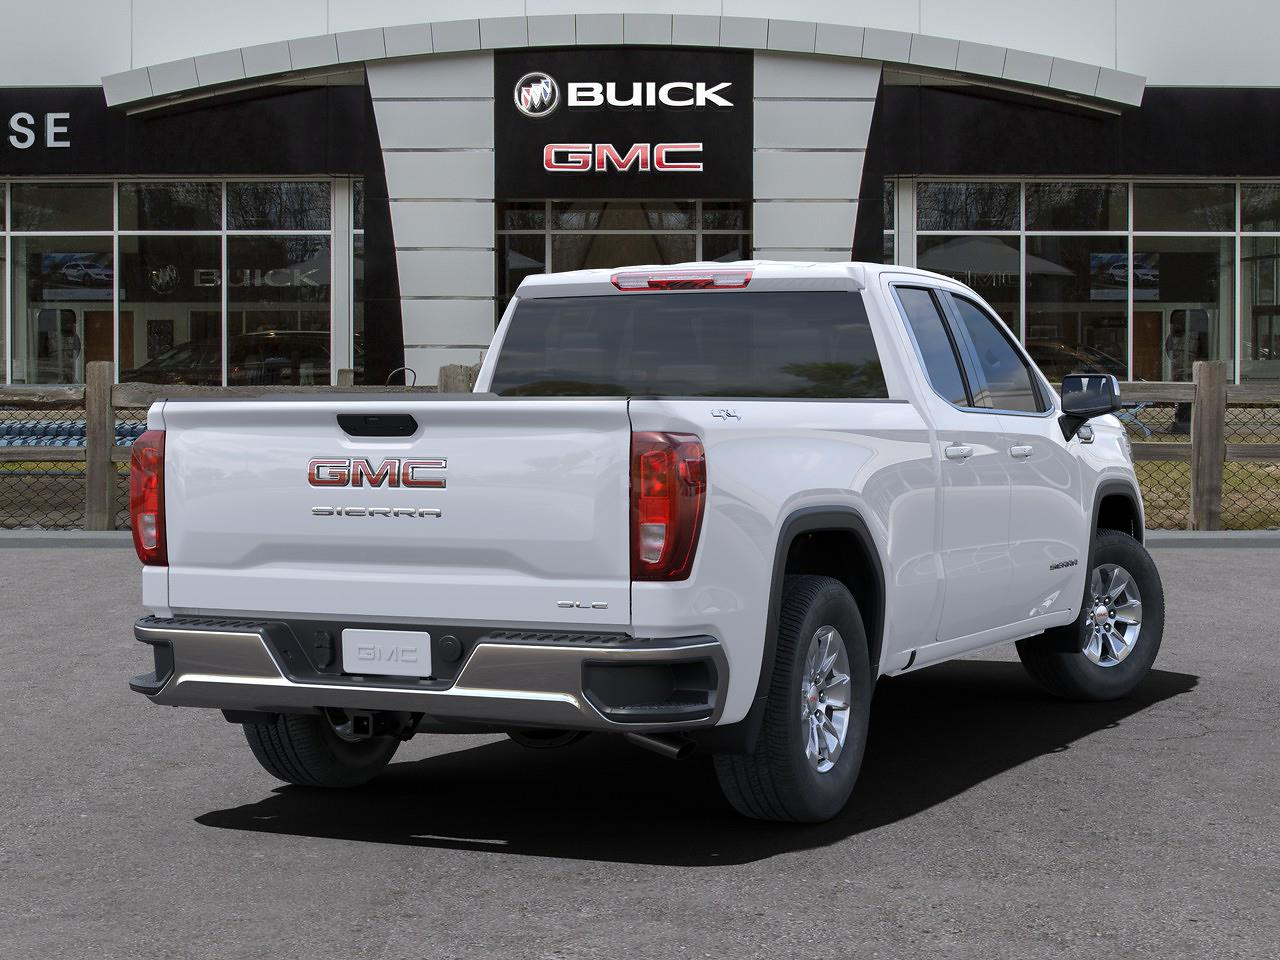 2021 GMC Sierra 1500 Double Cab 4x4, Pickup #SR1288 - photo 2